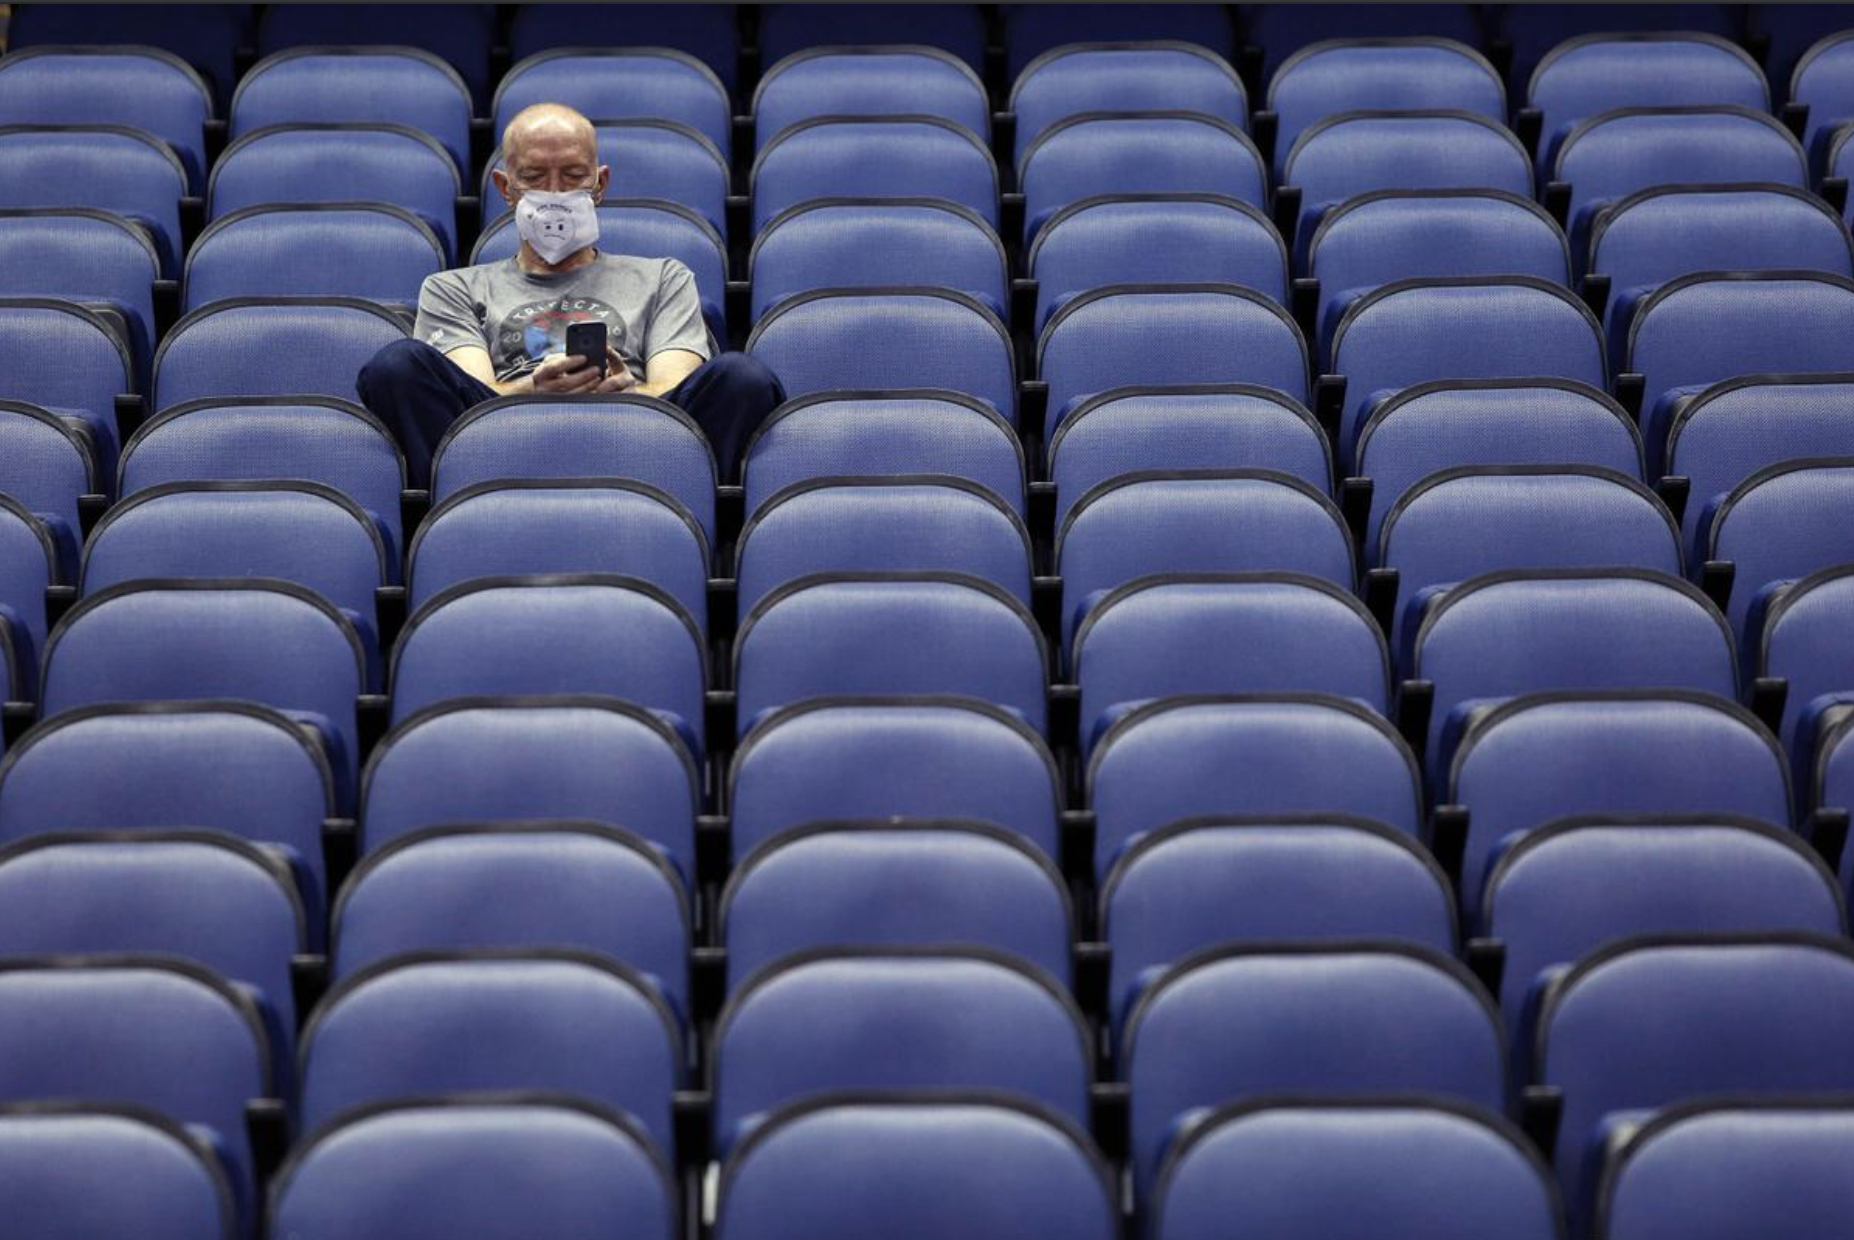 Photo shows a man wearing a surgical mask sitting alone in an empty stadium